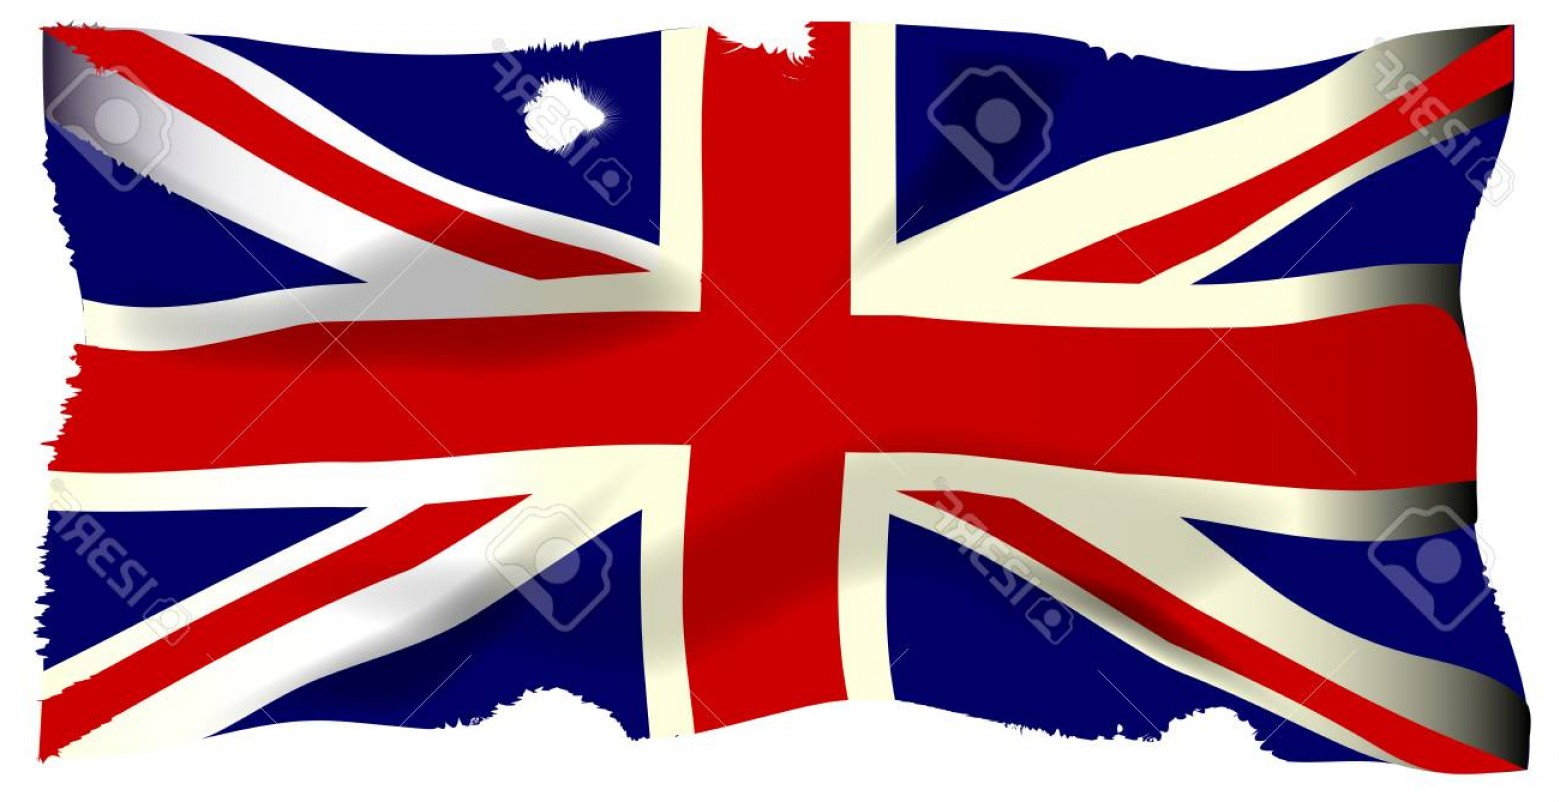 Union Jack Flag Tattered Vector: Photostock Vector The British Union Flag Or Union Jackthat Is Damaged By Cannon And Musket Ball Fire